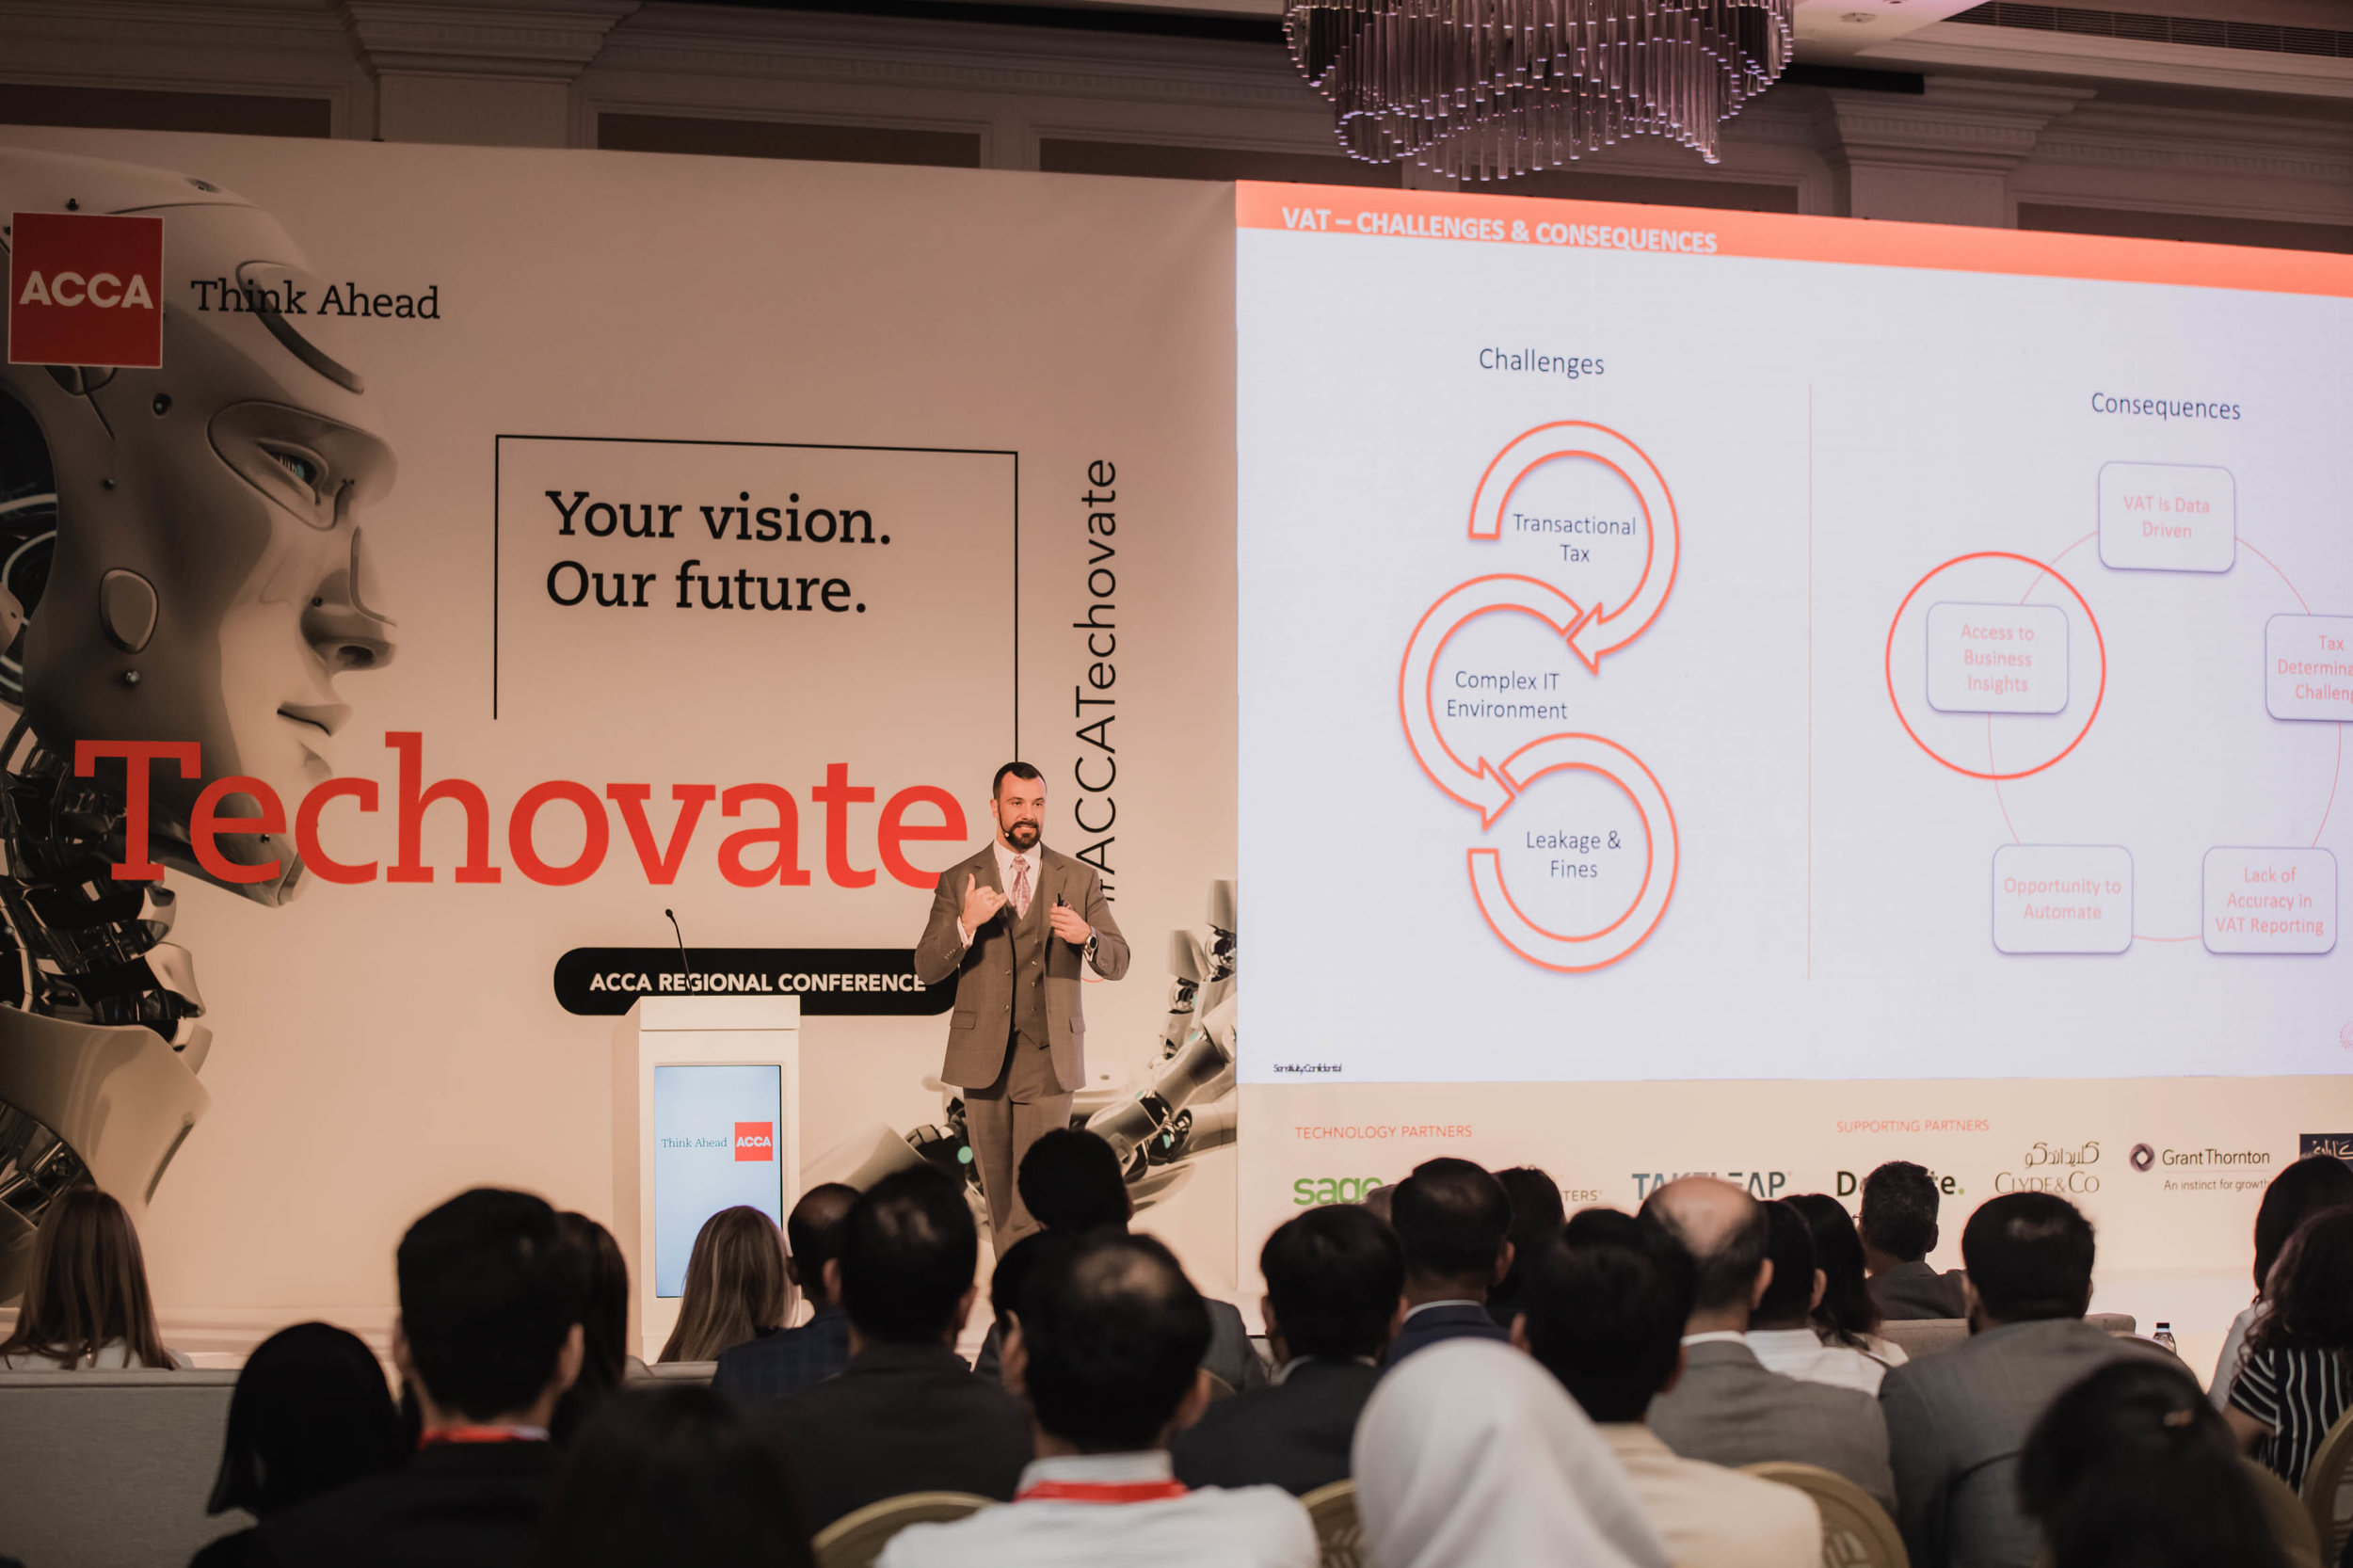 ACCA Techovate Regional Conference 371.jpg